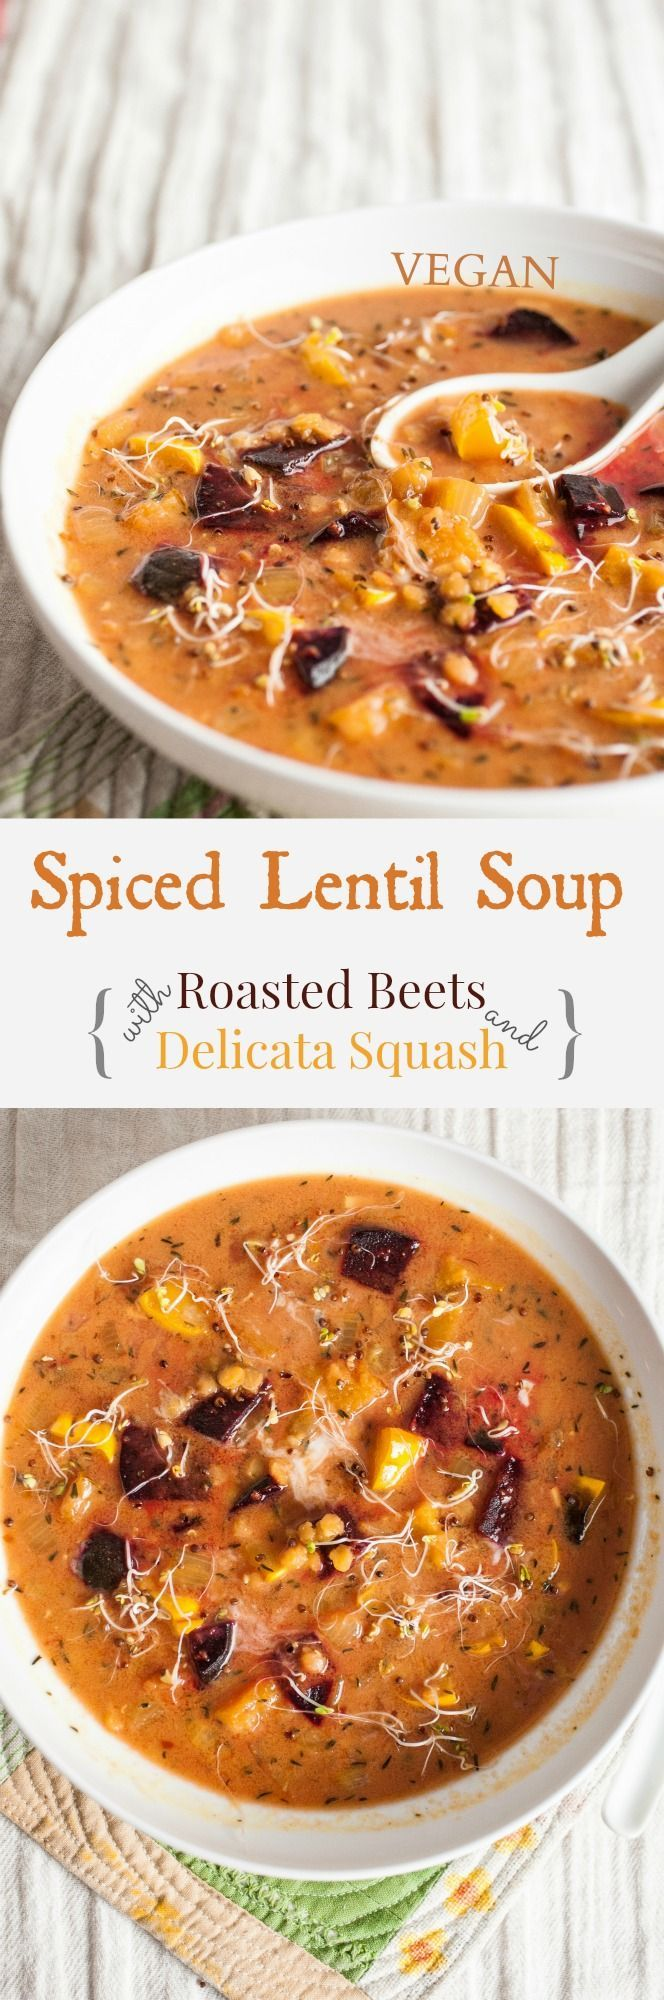 Spiced Lentil Soup with Roasted Squash & Delicata Squash - Based with creamy coconut milk, red lentils mingle with roasted beets and caramelized delicata squash. Spiced with tantalizing aromatics like cardamom, cinnamon, and nutmeg. #vegan